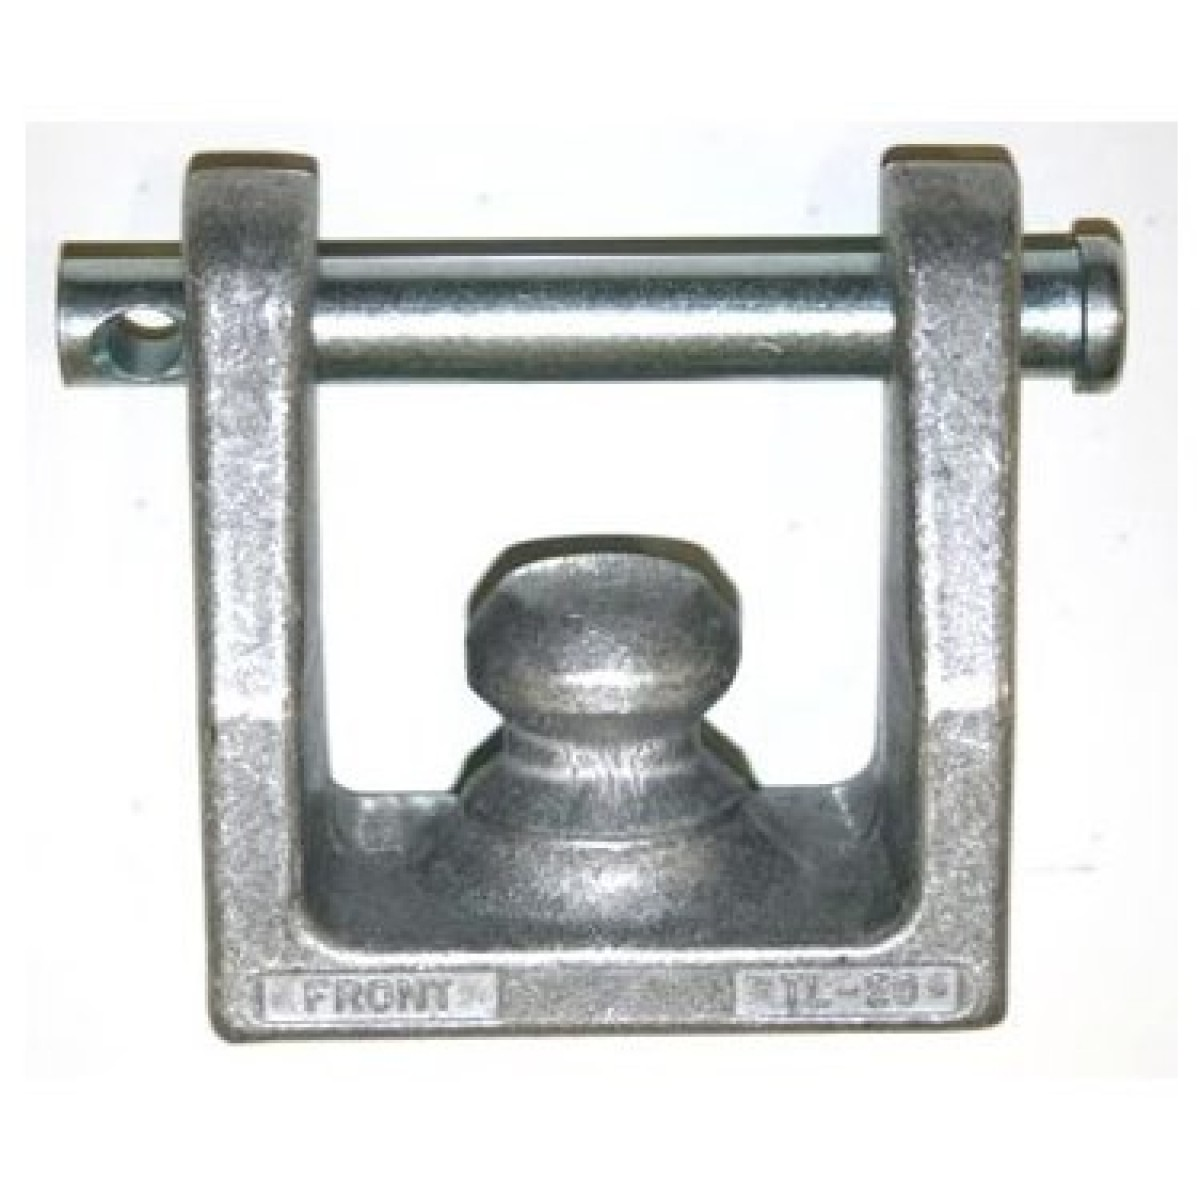 Blaylock Coupler Lock Tl 20 Bulldog Coupler